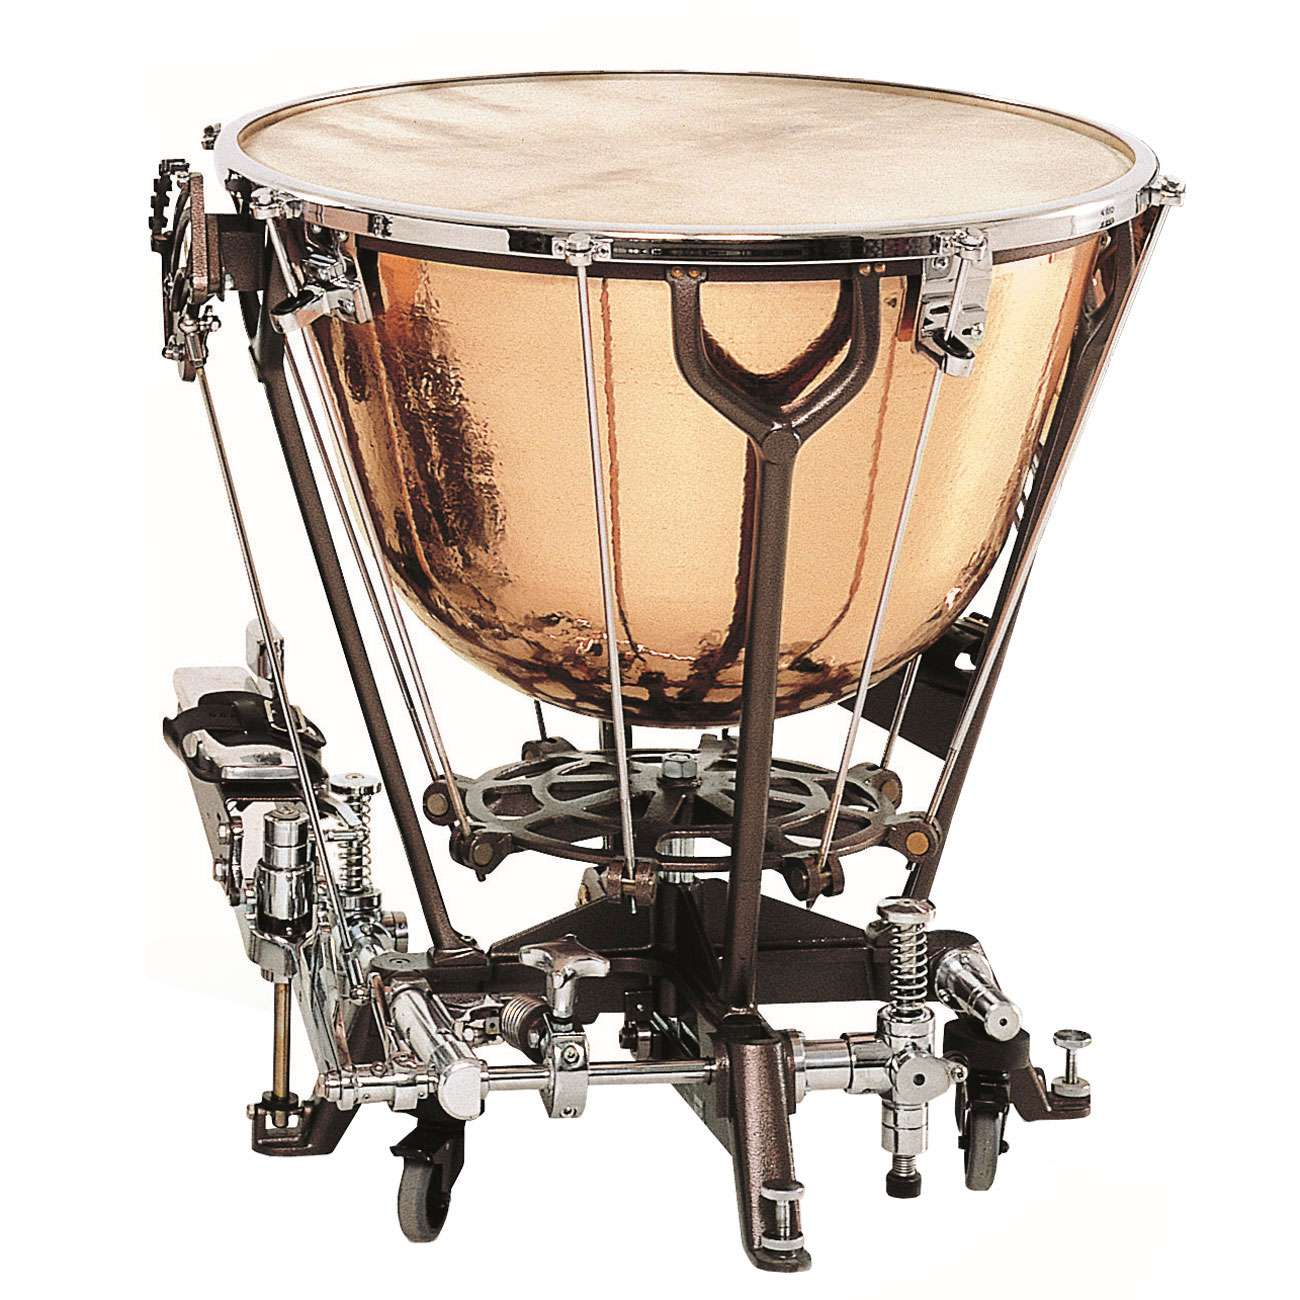 "Adams 30"" Philharmonic Light Timpani with Dresden Pedal and Calfskin Head"